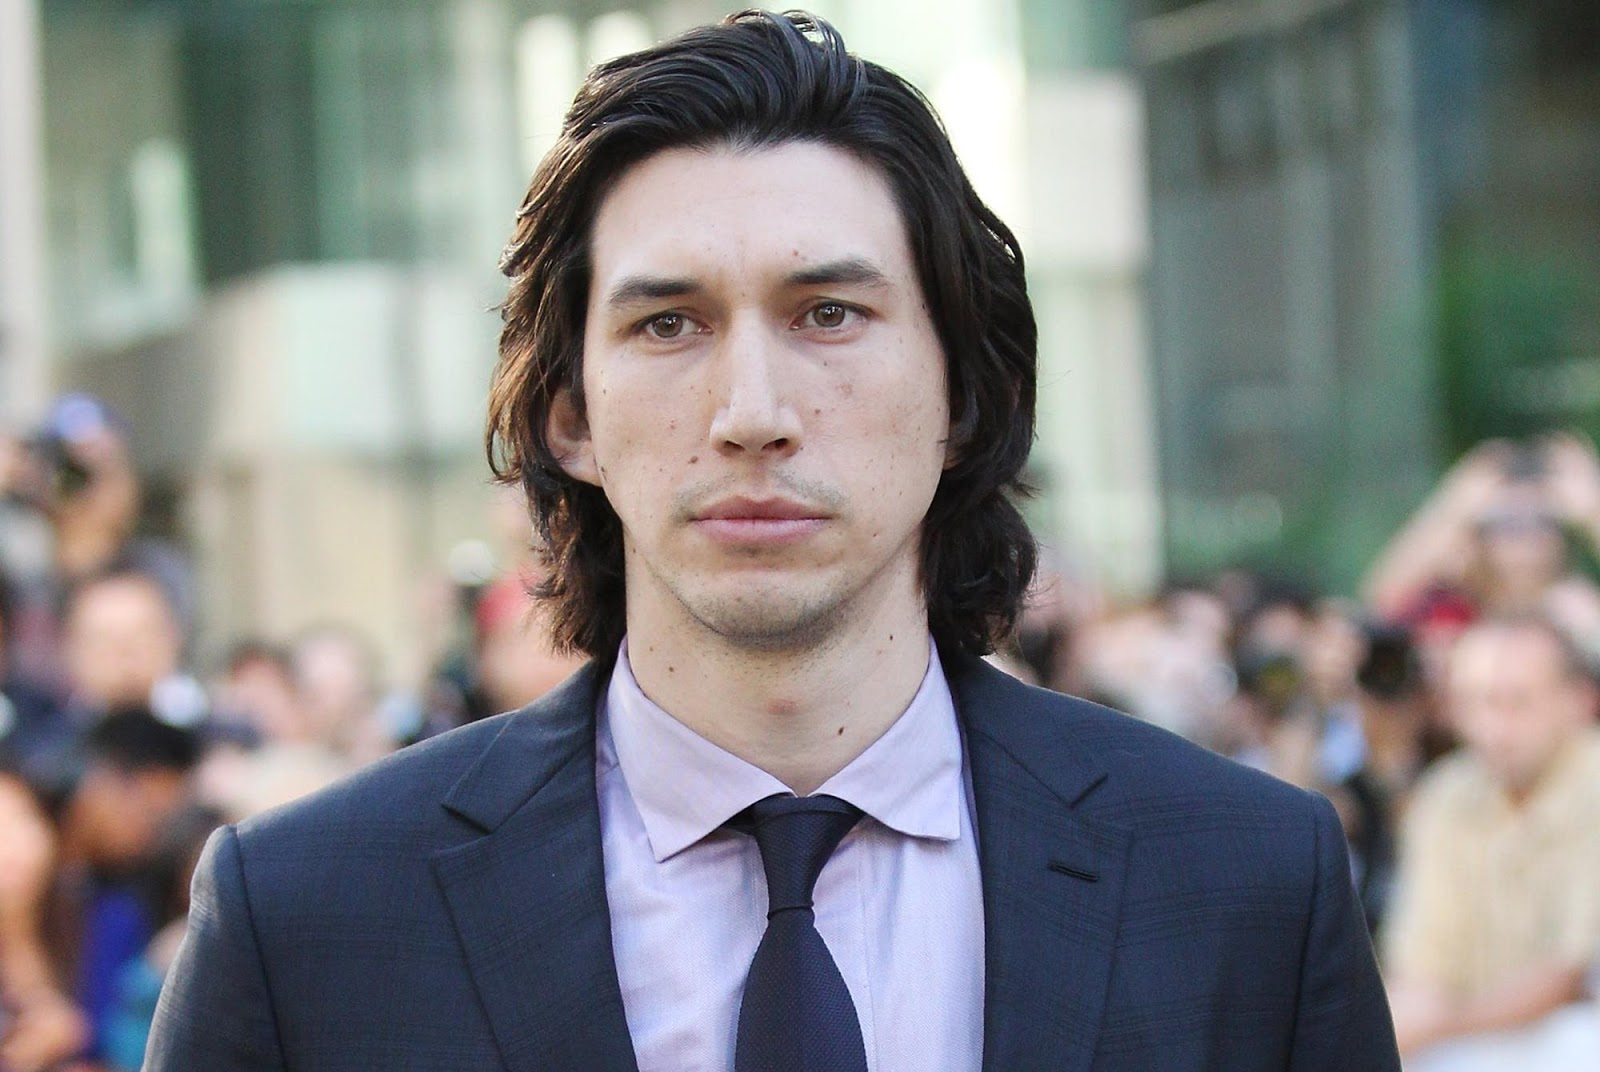 Adam Driver All Upcoming Movies List 2016, 2017 With